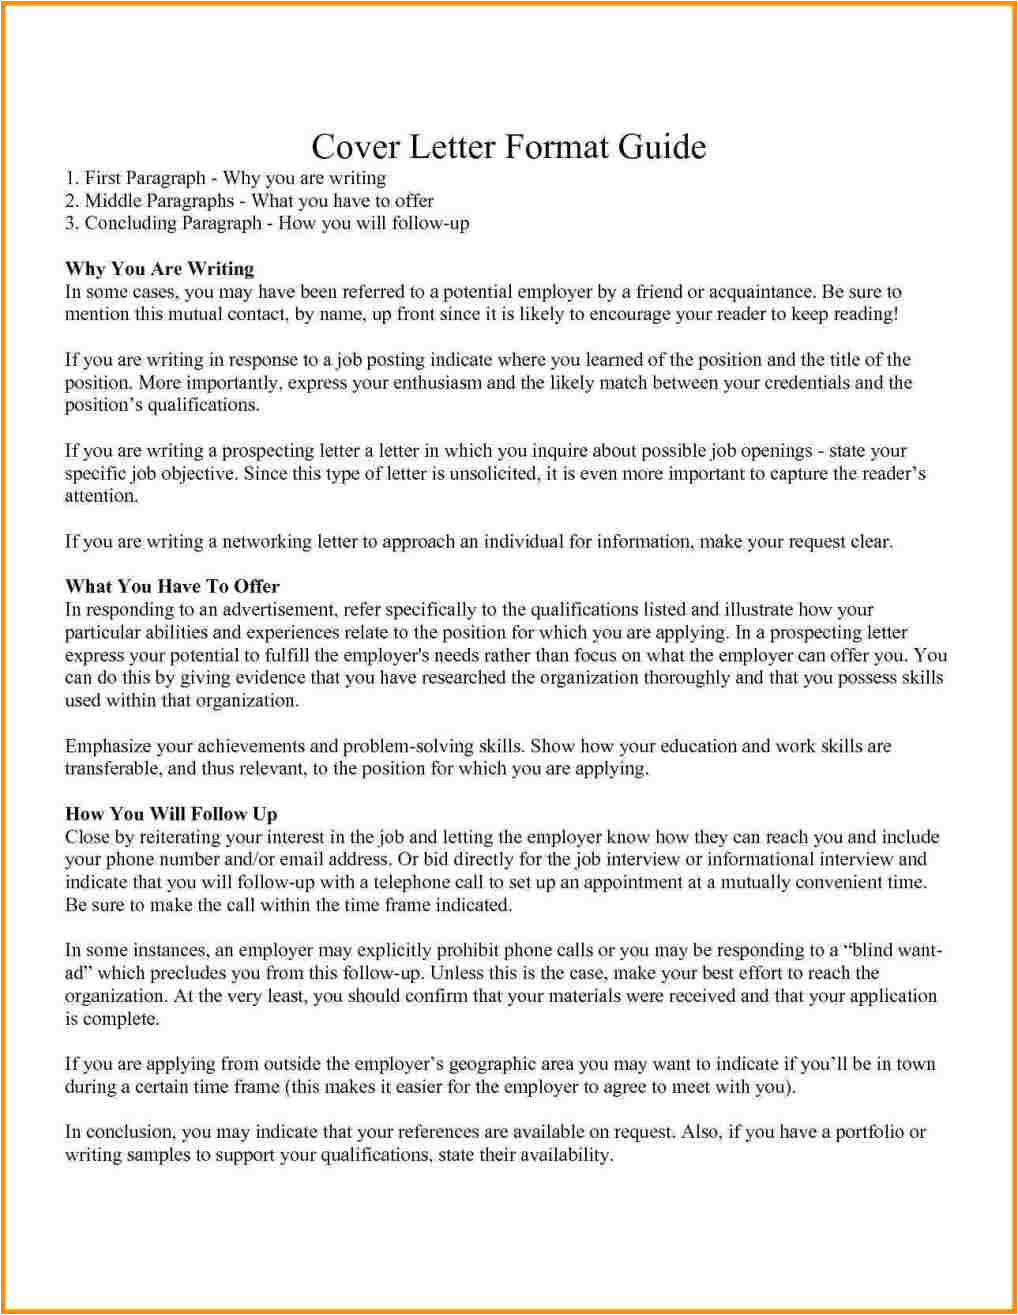 Forbes How to Write A Cover Letter forbes How to Write A Cover Letter Cover Letter